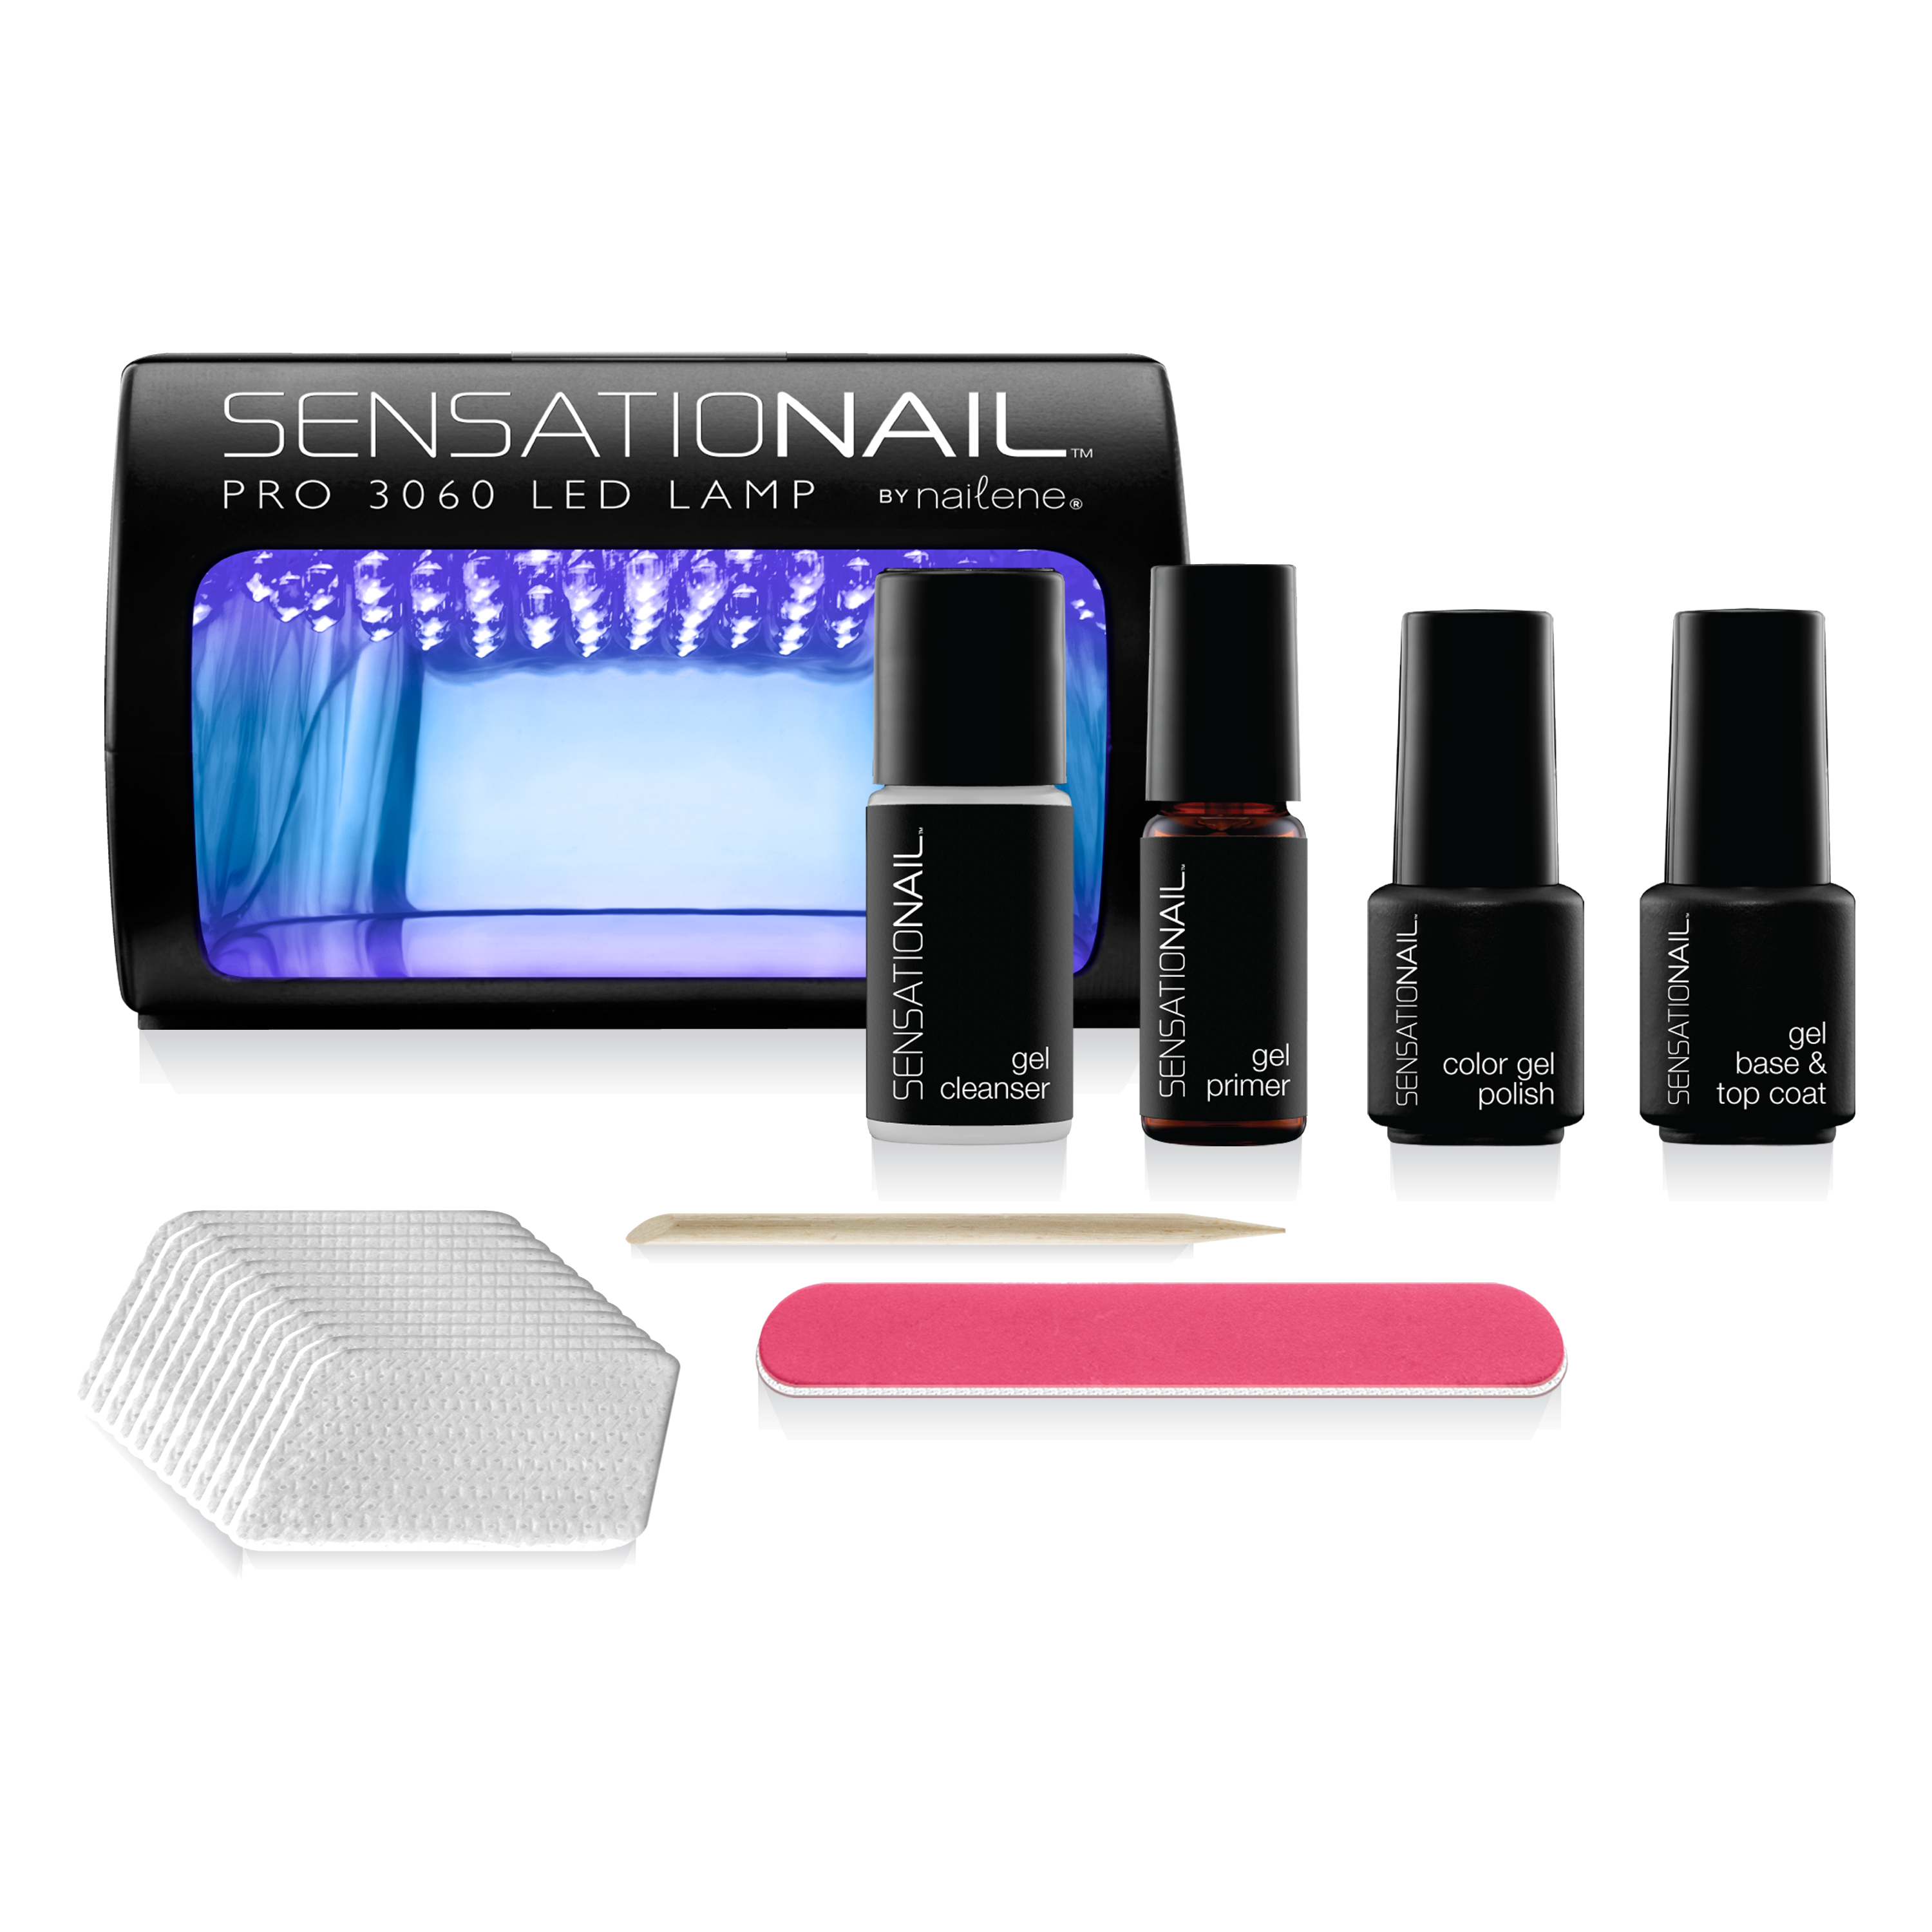 Sensationail uk